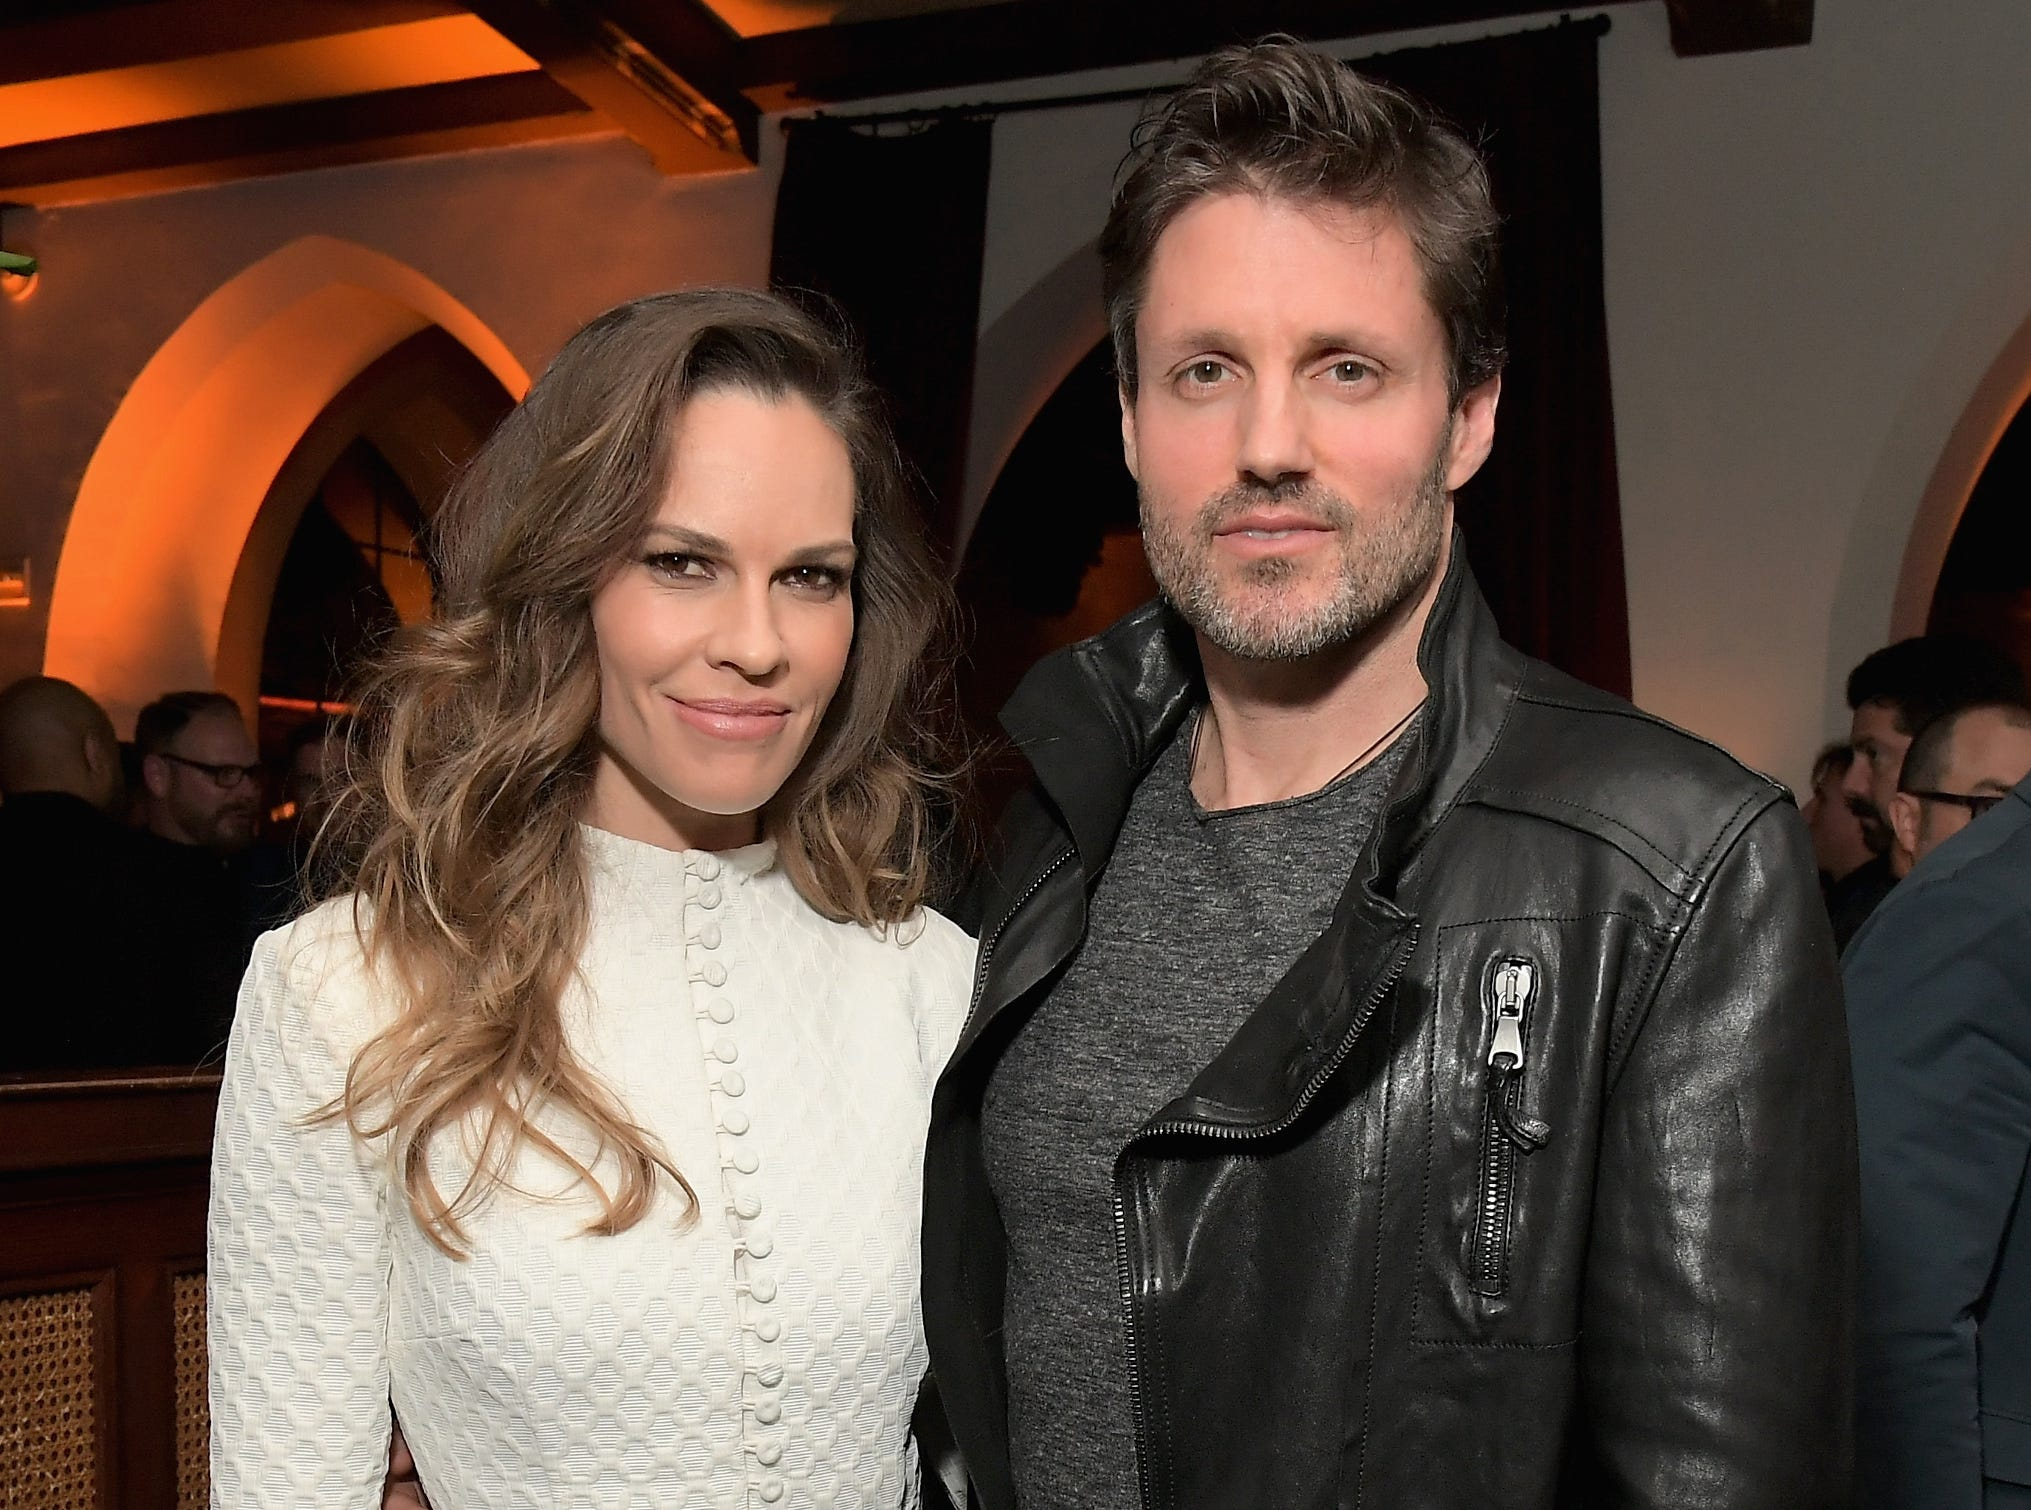 Hilary Swank (L) and Philip Schneider attend the Cadillac Oscar Week Celebration.